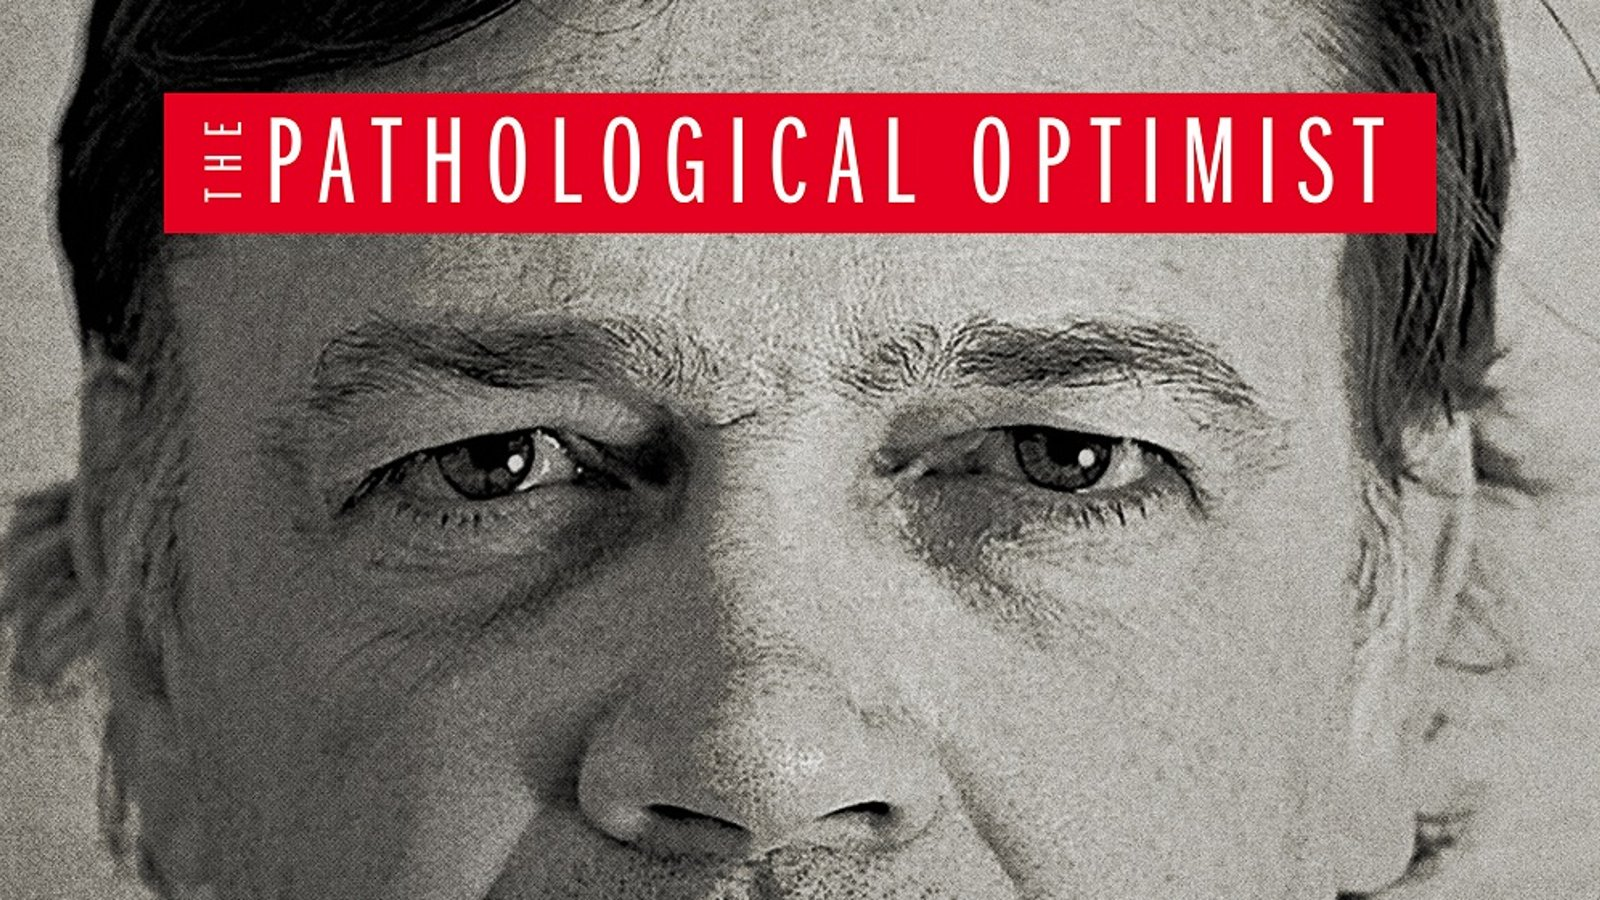 """The Pathological Optimist - The Man Behind the """"Anti-Vax Movement"""""""